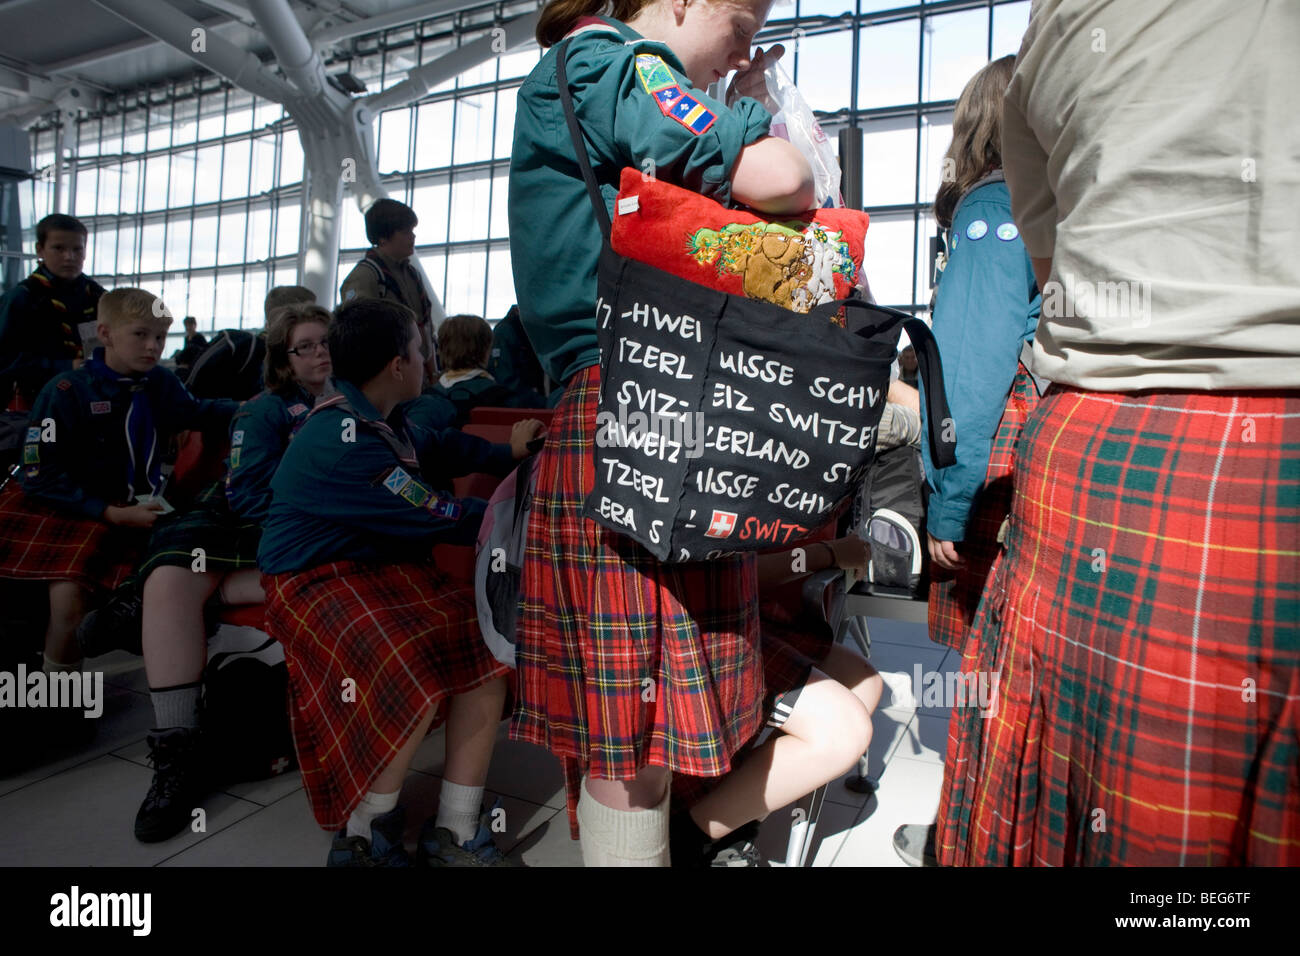 Scottish scout troupe passengers await their flight in departures at Heathrow's Terminal 5. Stock Photo